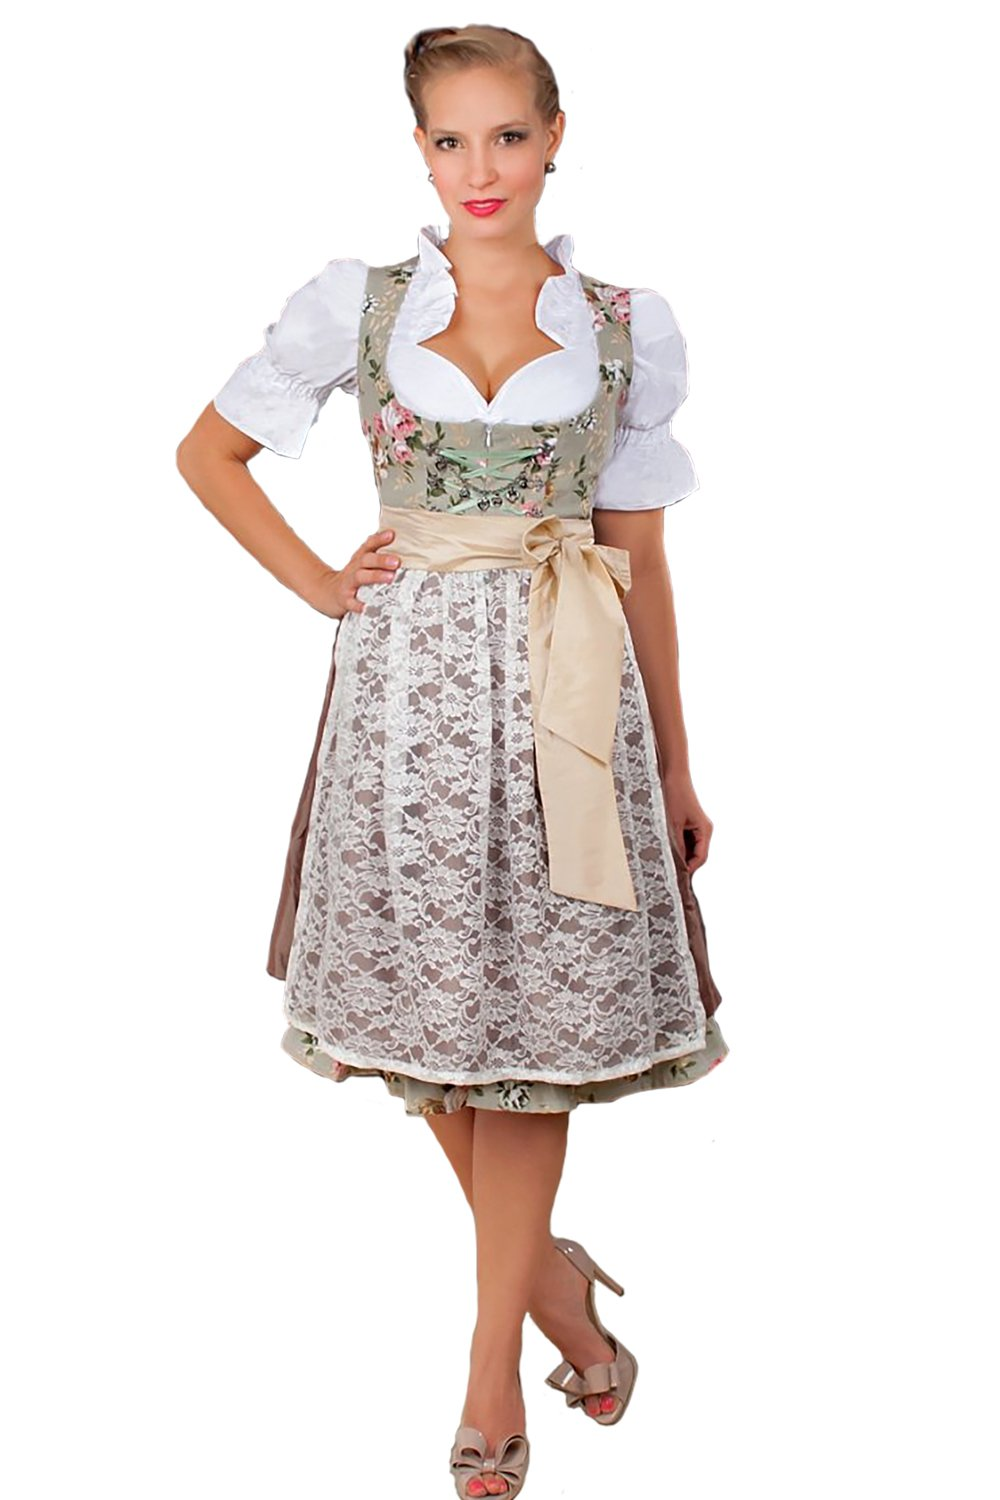 2-Piece Dirndl Dress Authentic Bavarian Floral Exlusive,Green, GE42/ US12